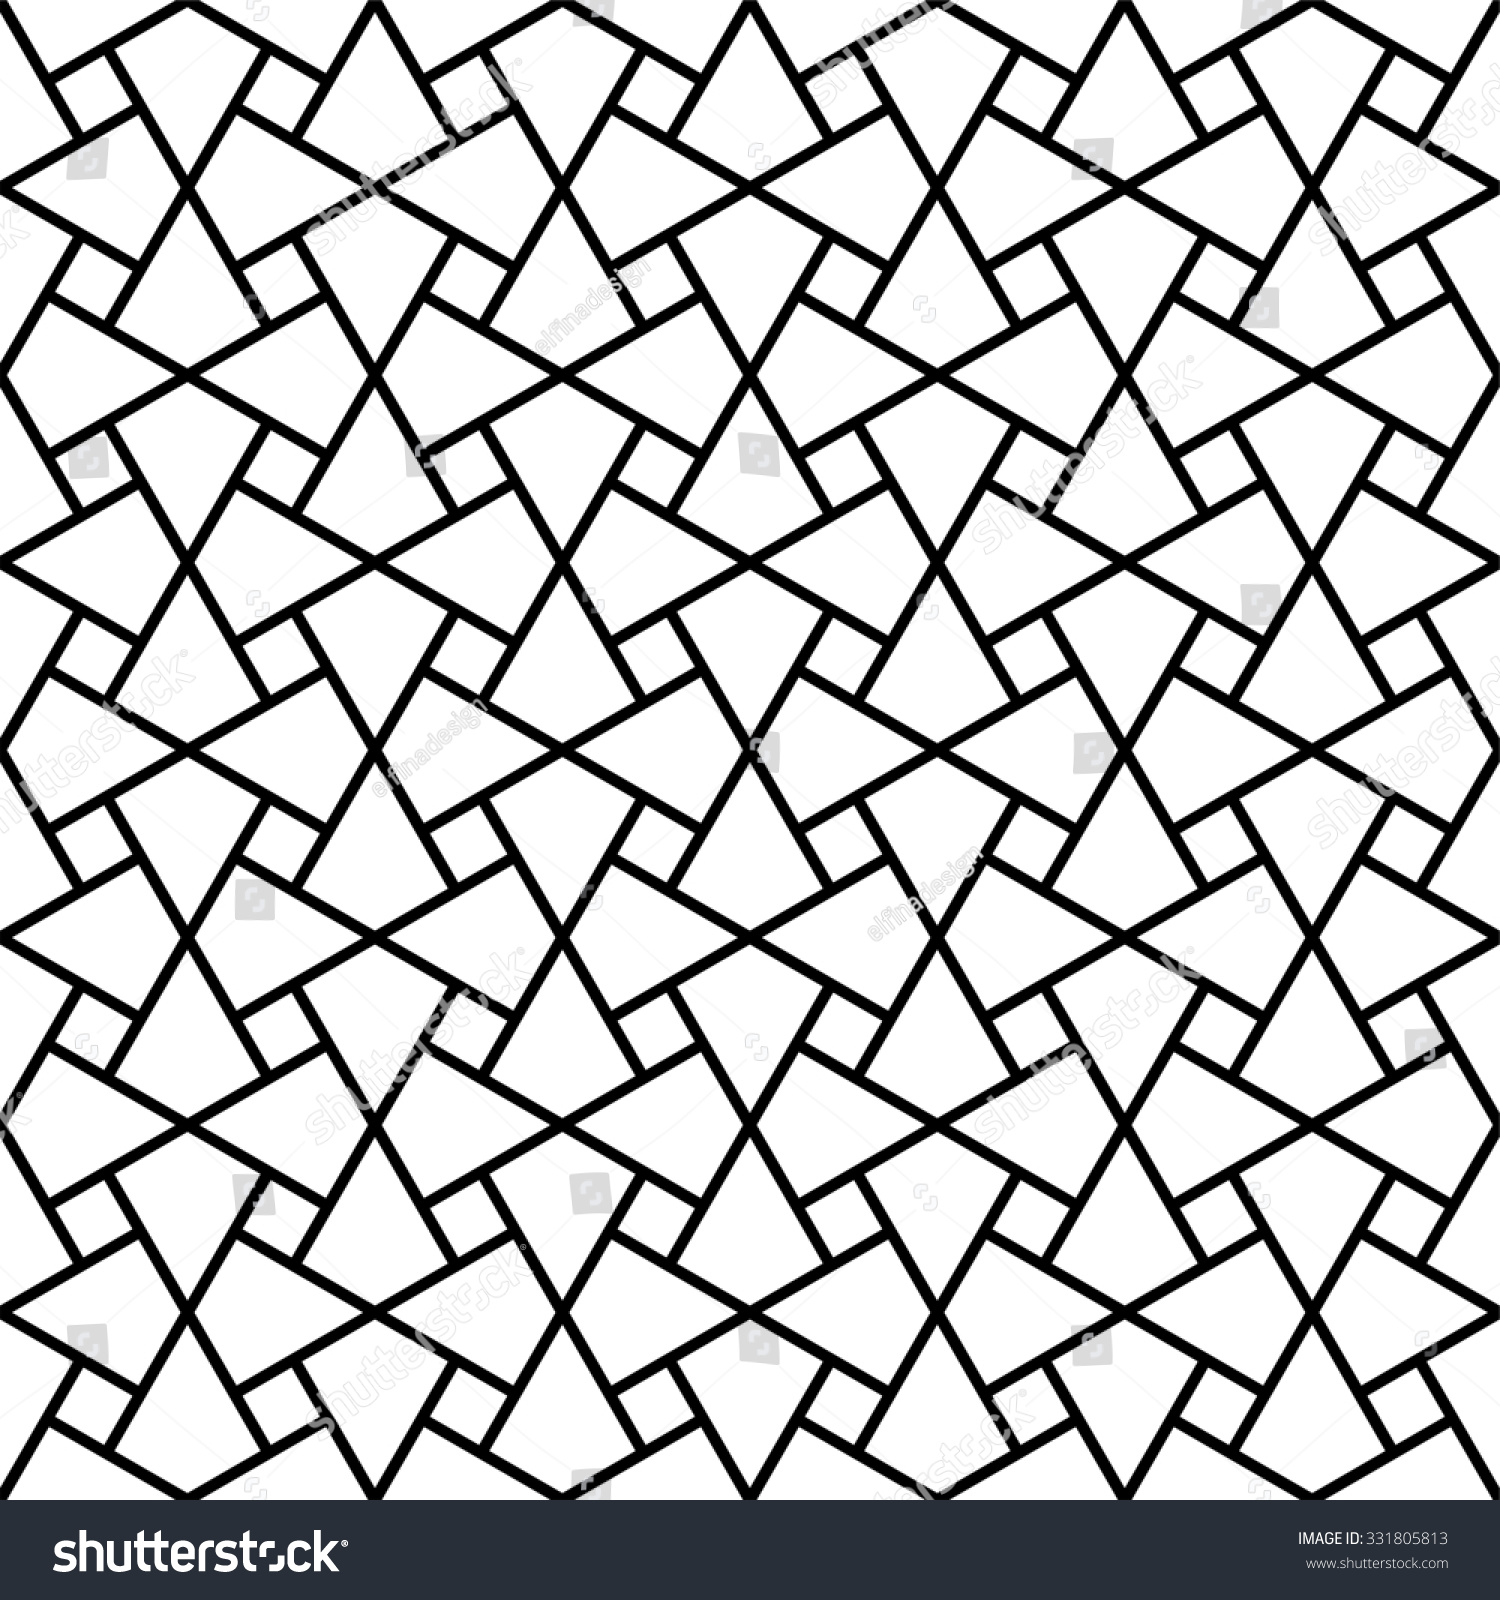 Islamic Pattern Vector Abstract Geometric Pattern Stock Vector ...